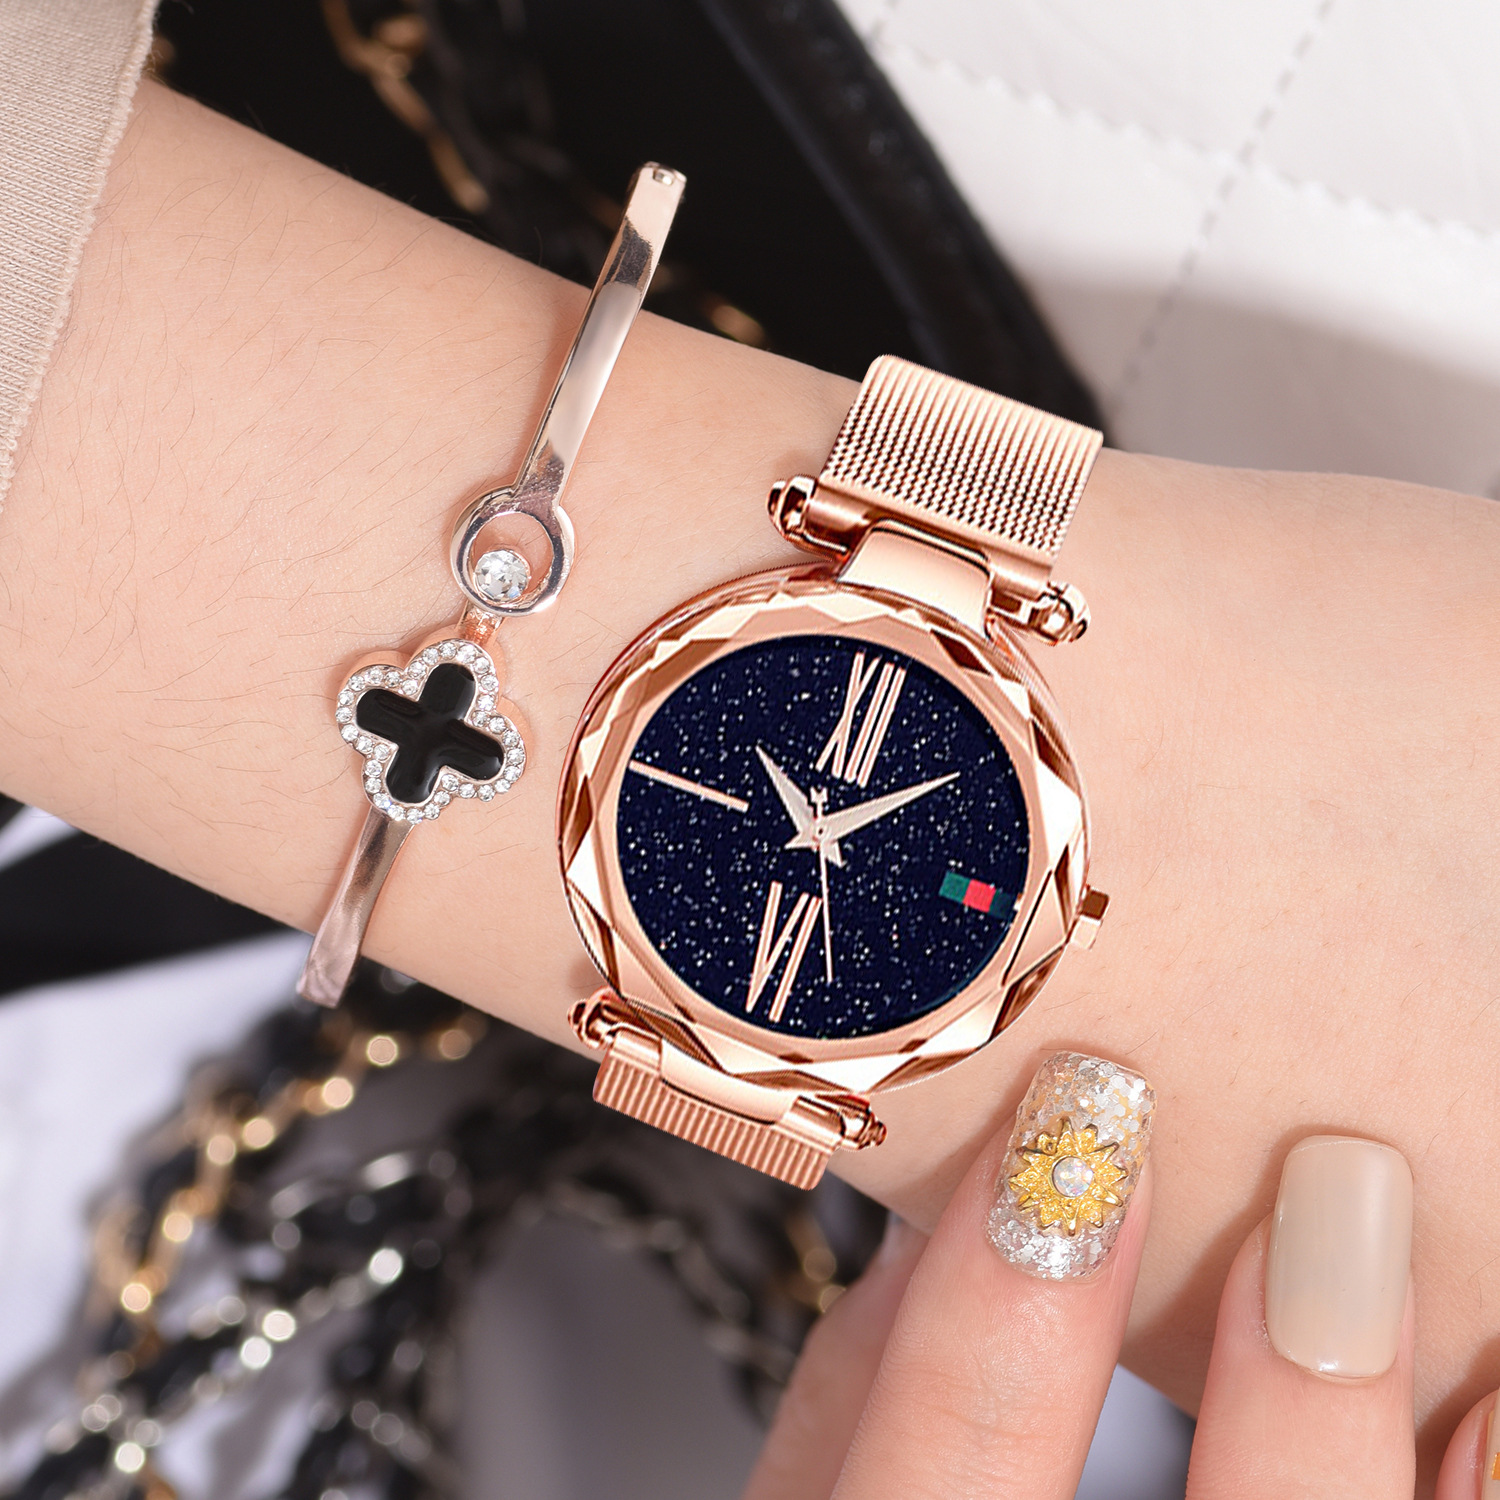 Dropshipping New Ladies Watch Luxury Women's Gold Watches Starry Sky Crystal Wrist Watch Women Gift Clock Relojes Para Mujer